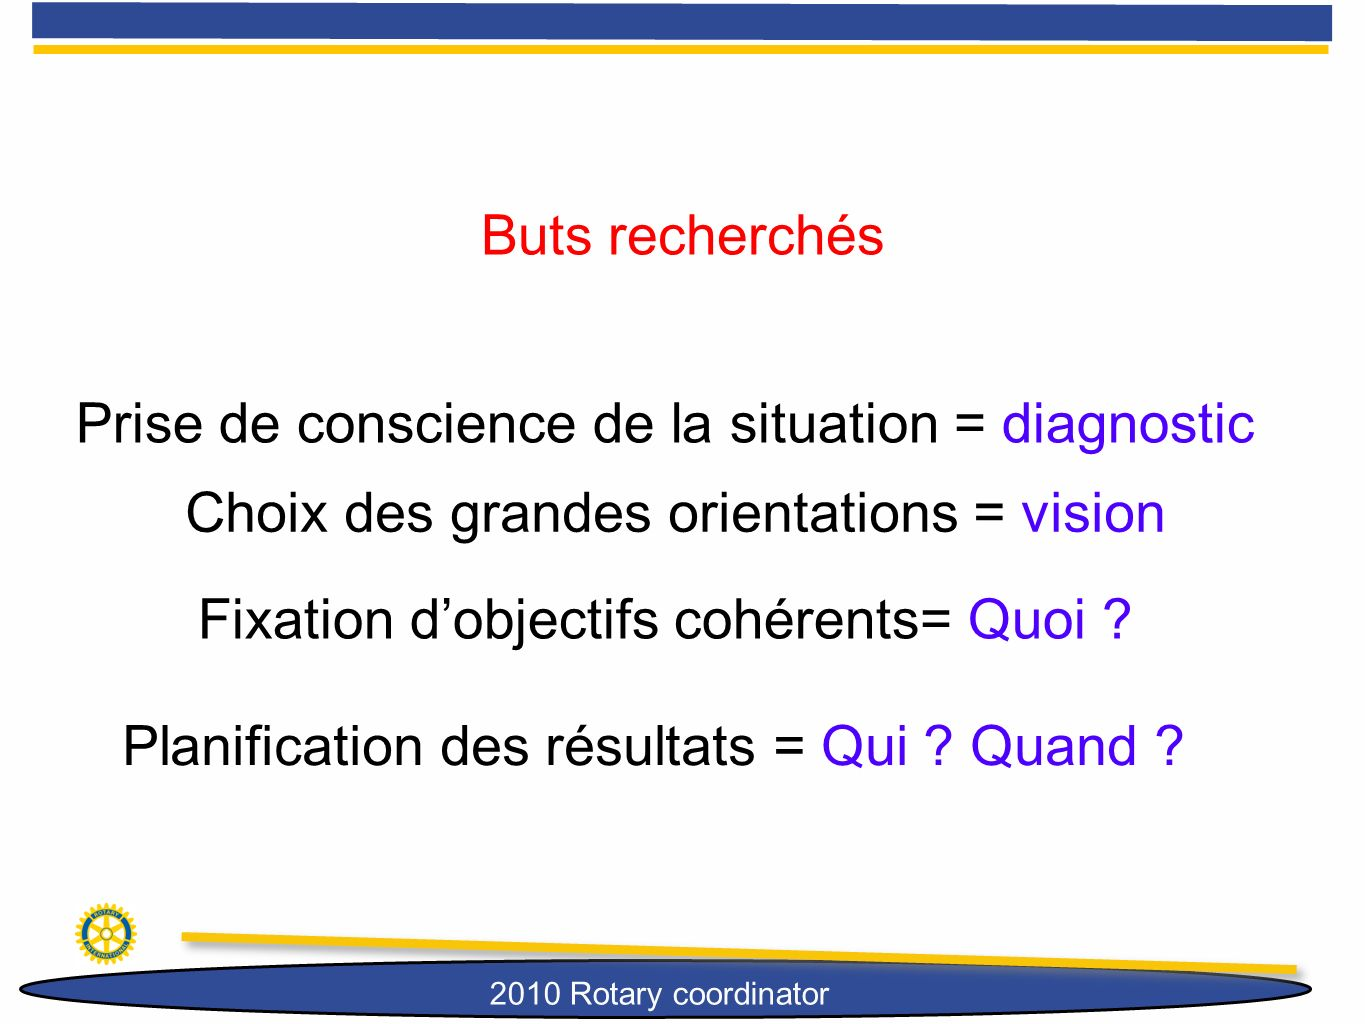 Prise de conscience de la situation = diagnostic